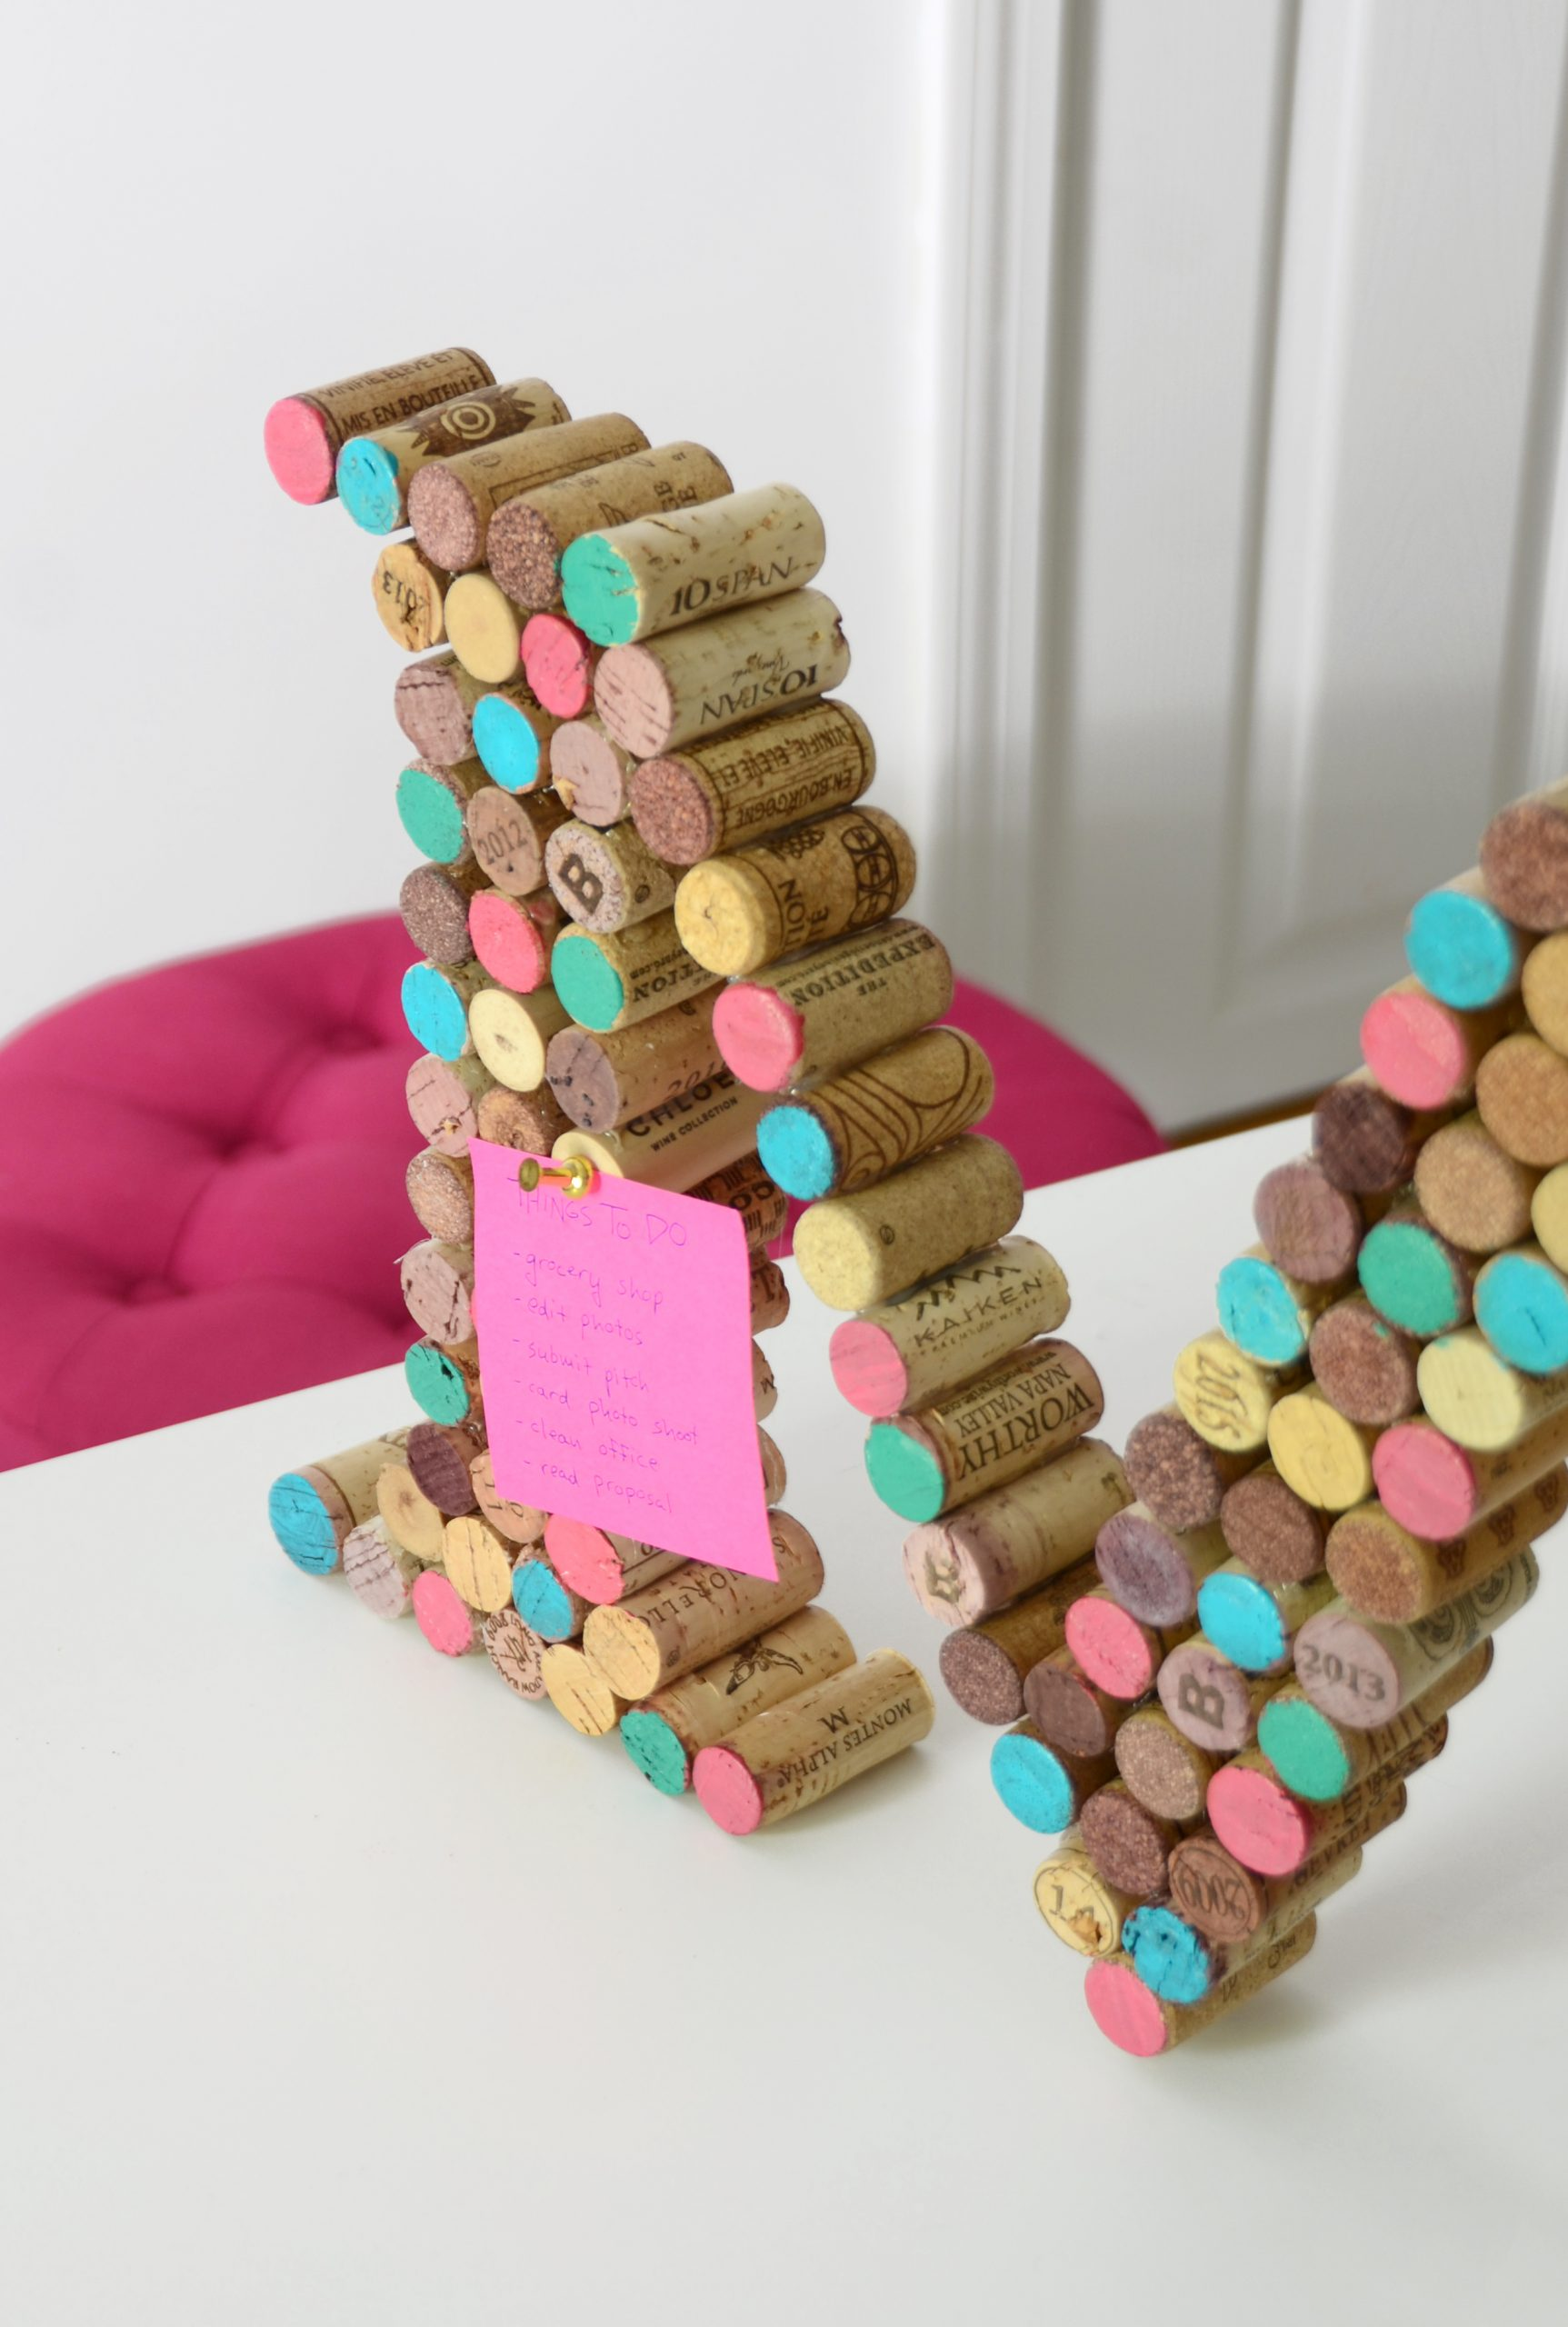 Diy cork monogram 9